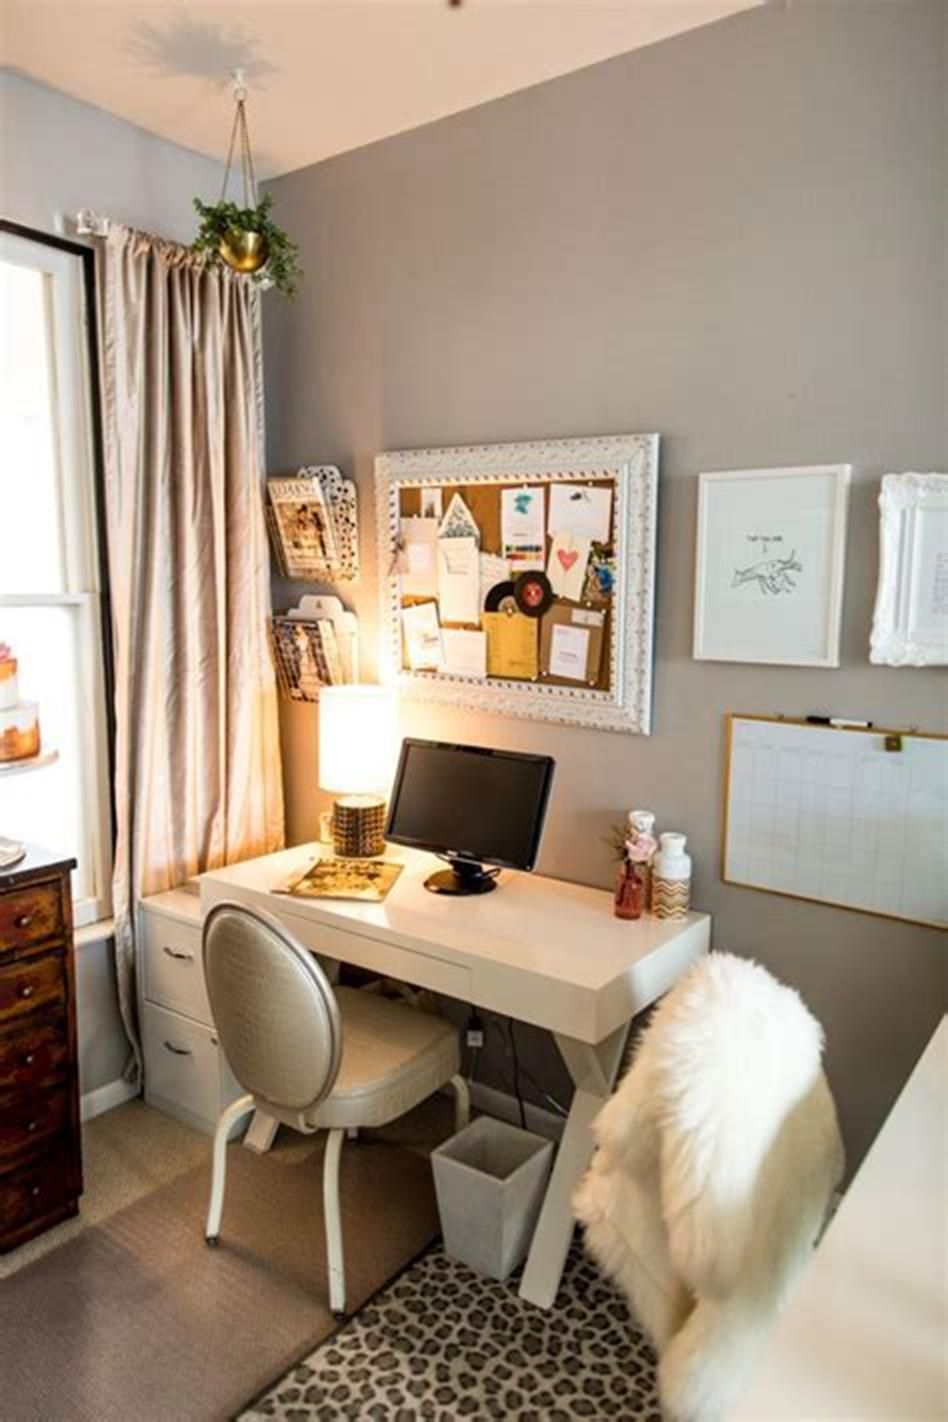 50 Best Small Space Office Decorating Ideas On A Budget 2019